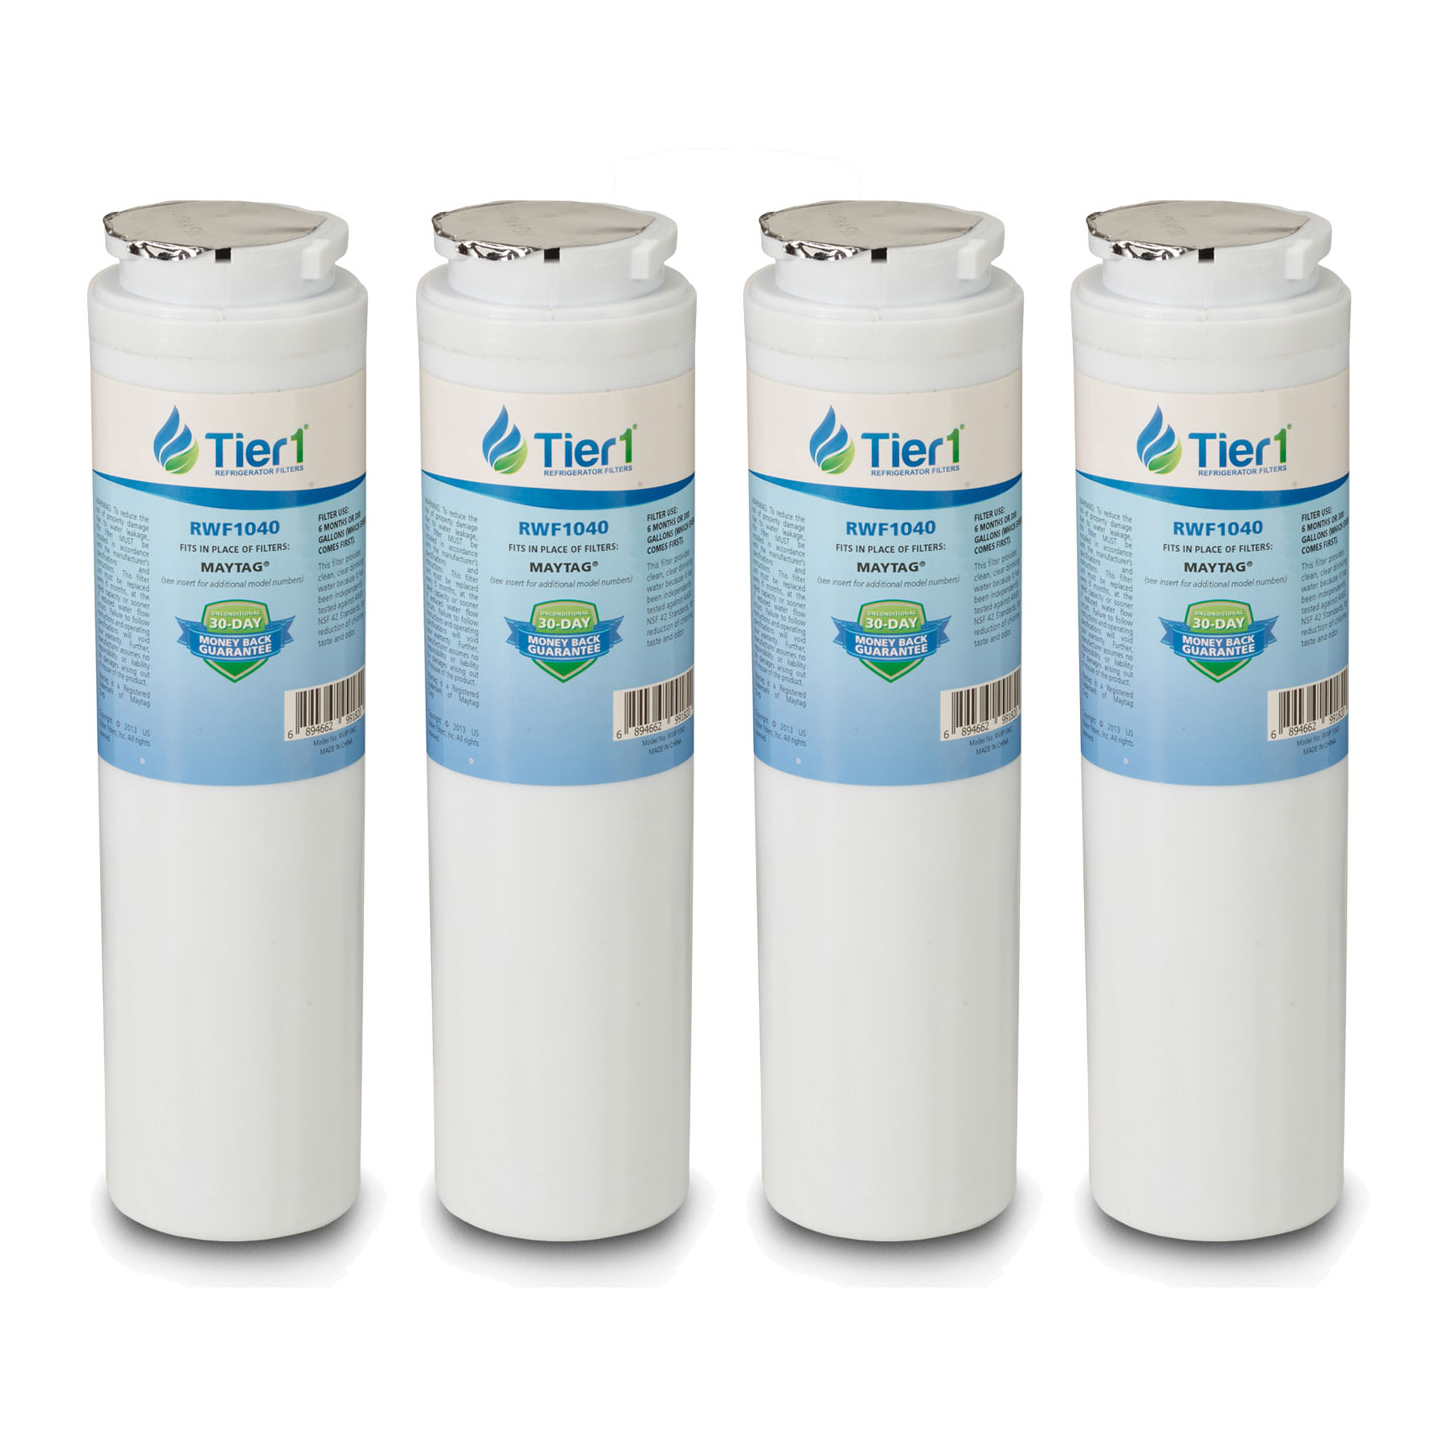 Tier1 UKF8001 Comparable Replacement for Maytag UKF8001, EDR4RXD1, Whirlpool 4396395, PUR, Jenn-Air, Puriclean II, 469006, 469005 Refrigerator Water Filter